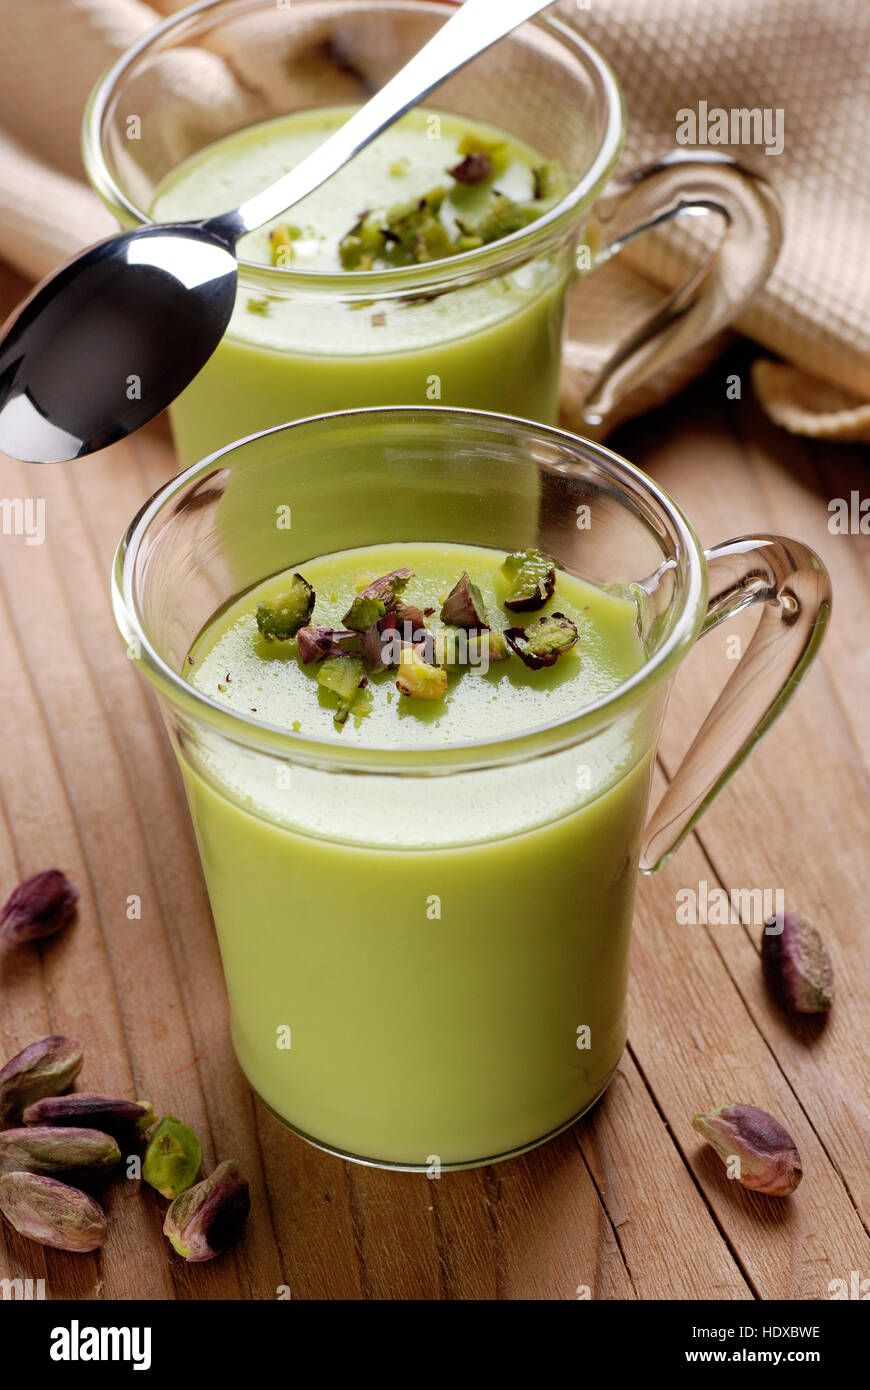 pistachio pudding into glass cup - Stock Image